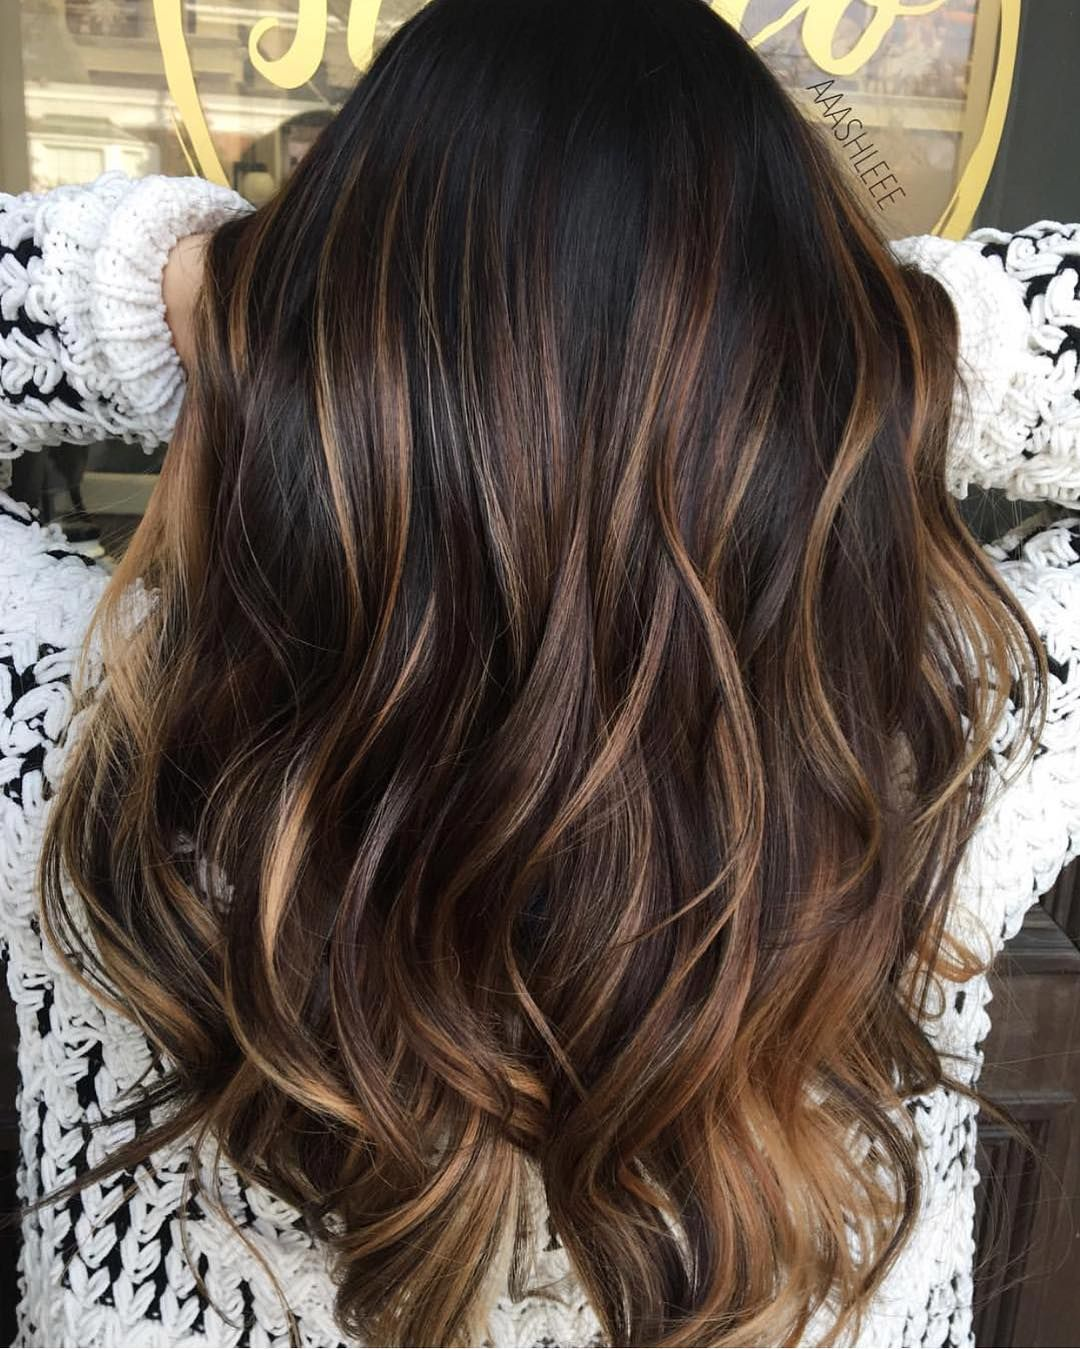 highlights Dark color brown hair with